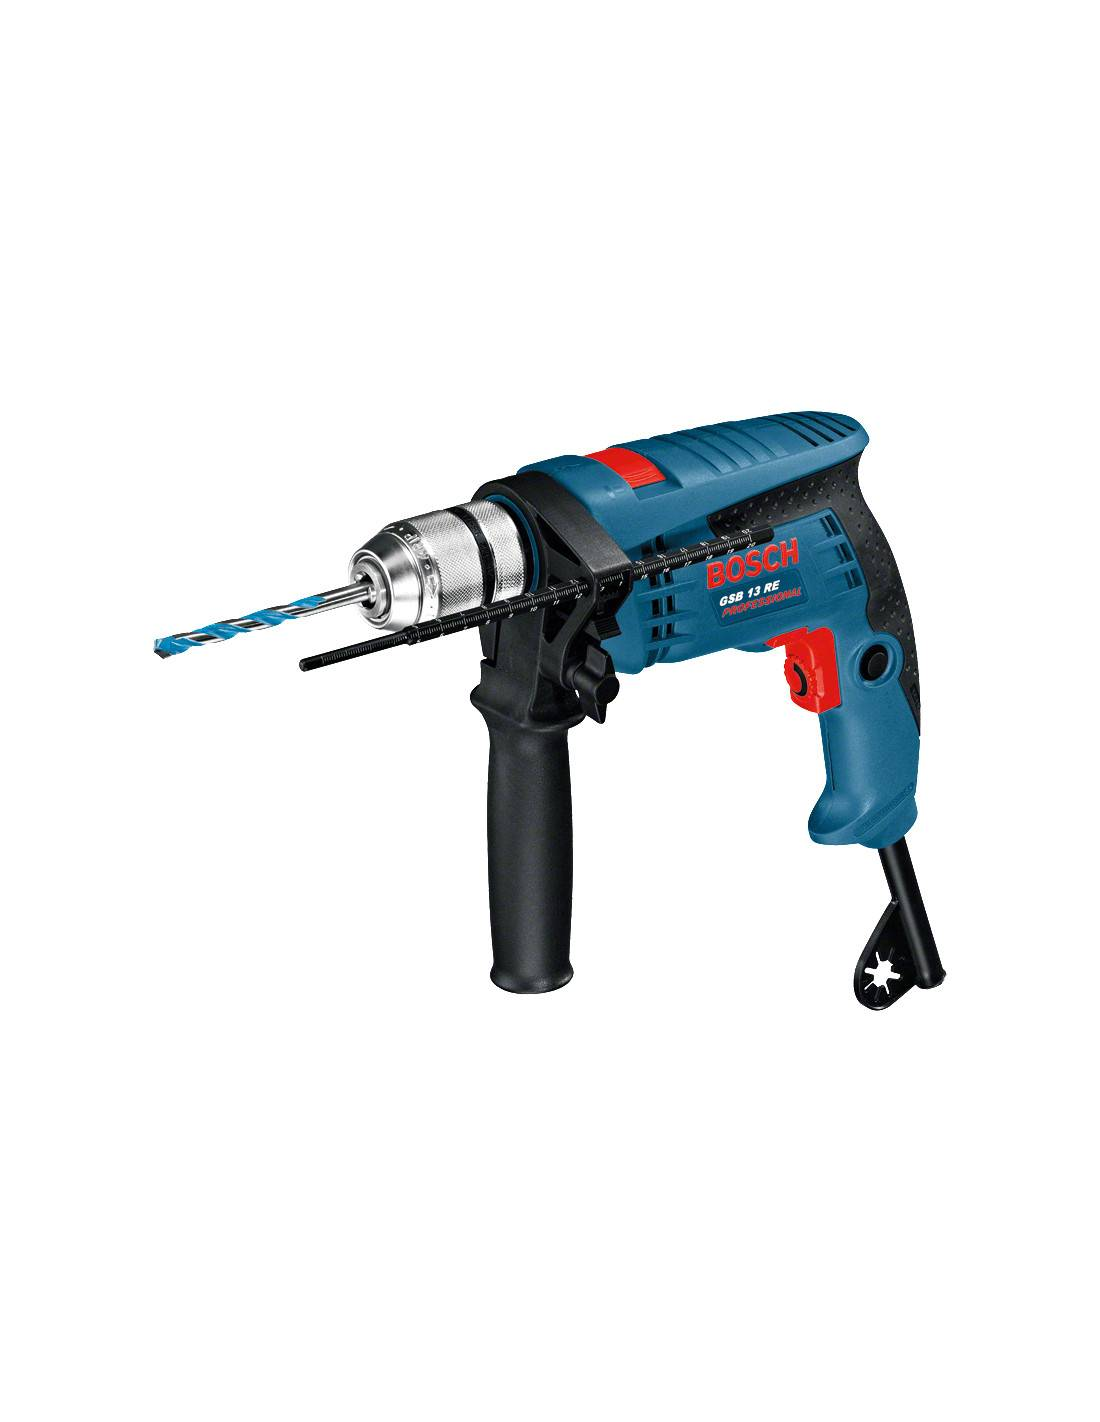 Perceuse à percussion BOSCH 600W GSB 13 RE en coffret standard - 0601217101